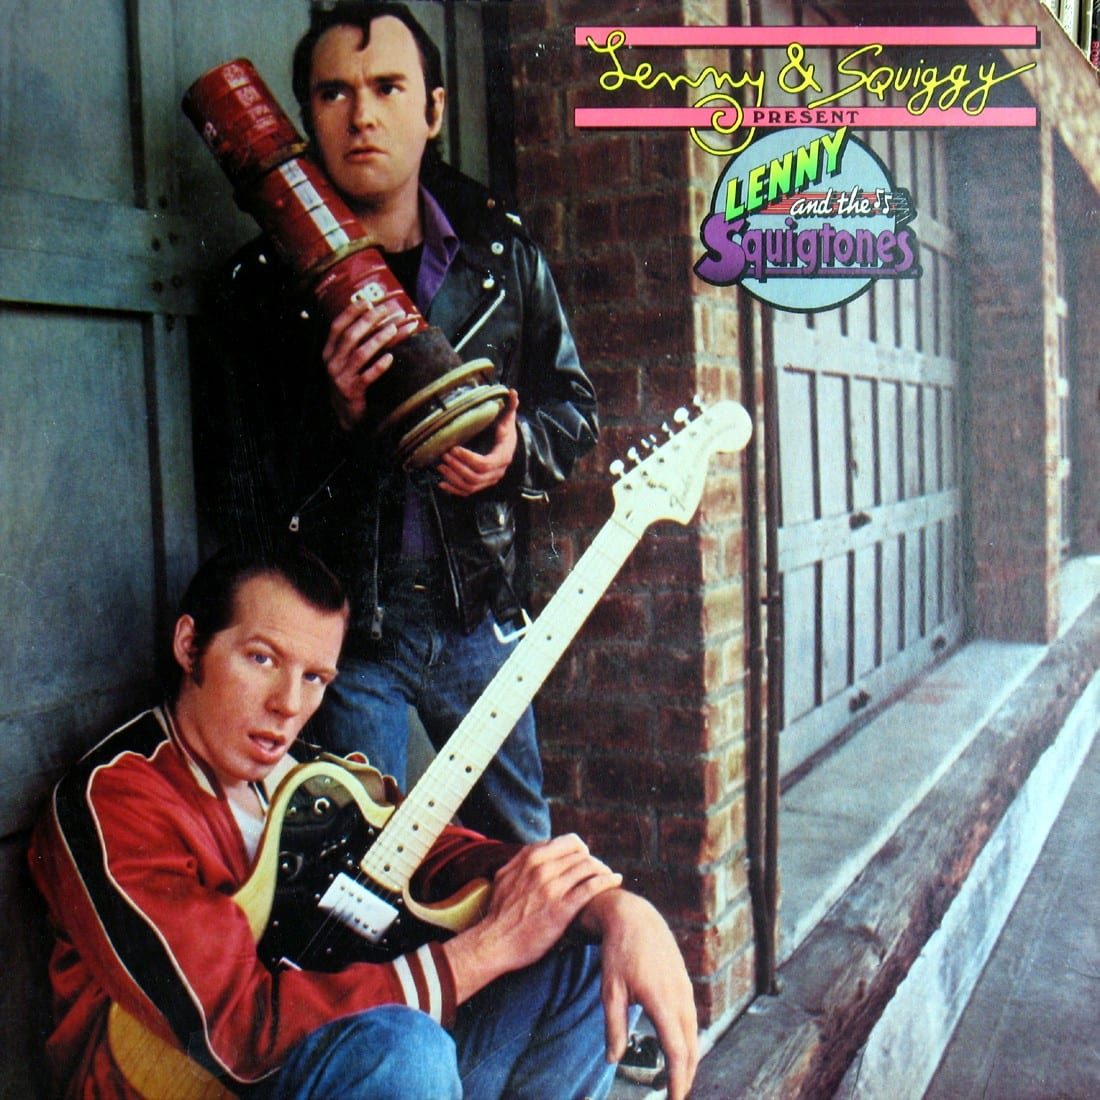 Lenny And The Squigtones - Lenny & Squiggy Present Lenny And The Squigtones (EXPANDED EDITION) (1979) CD 8